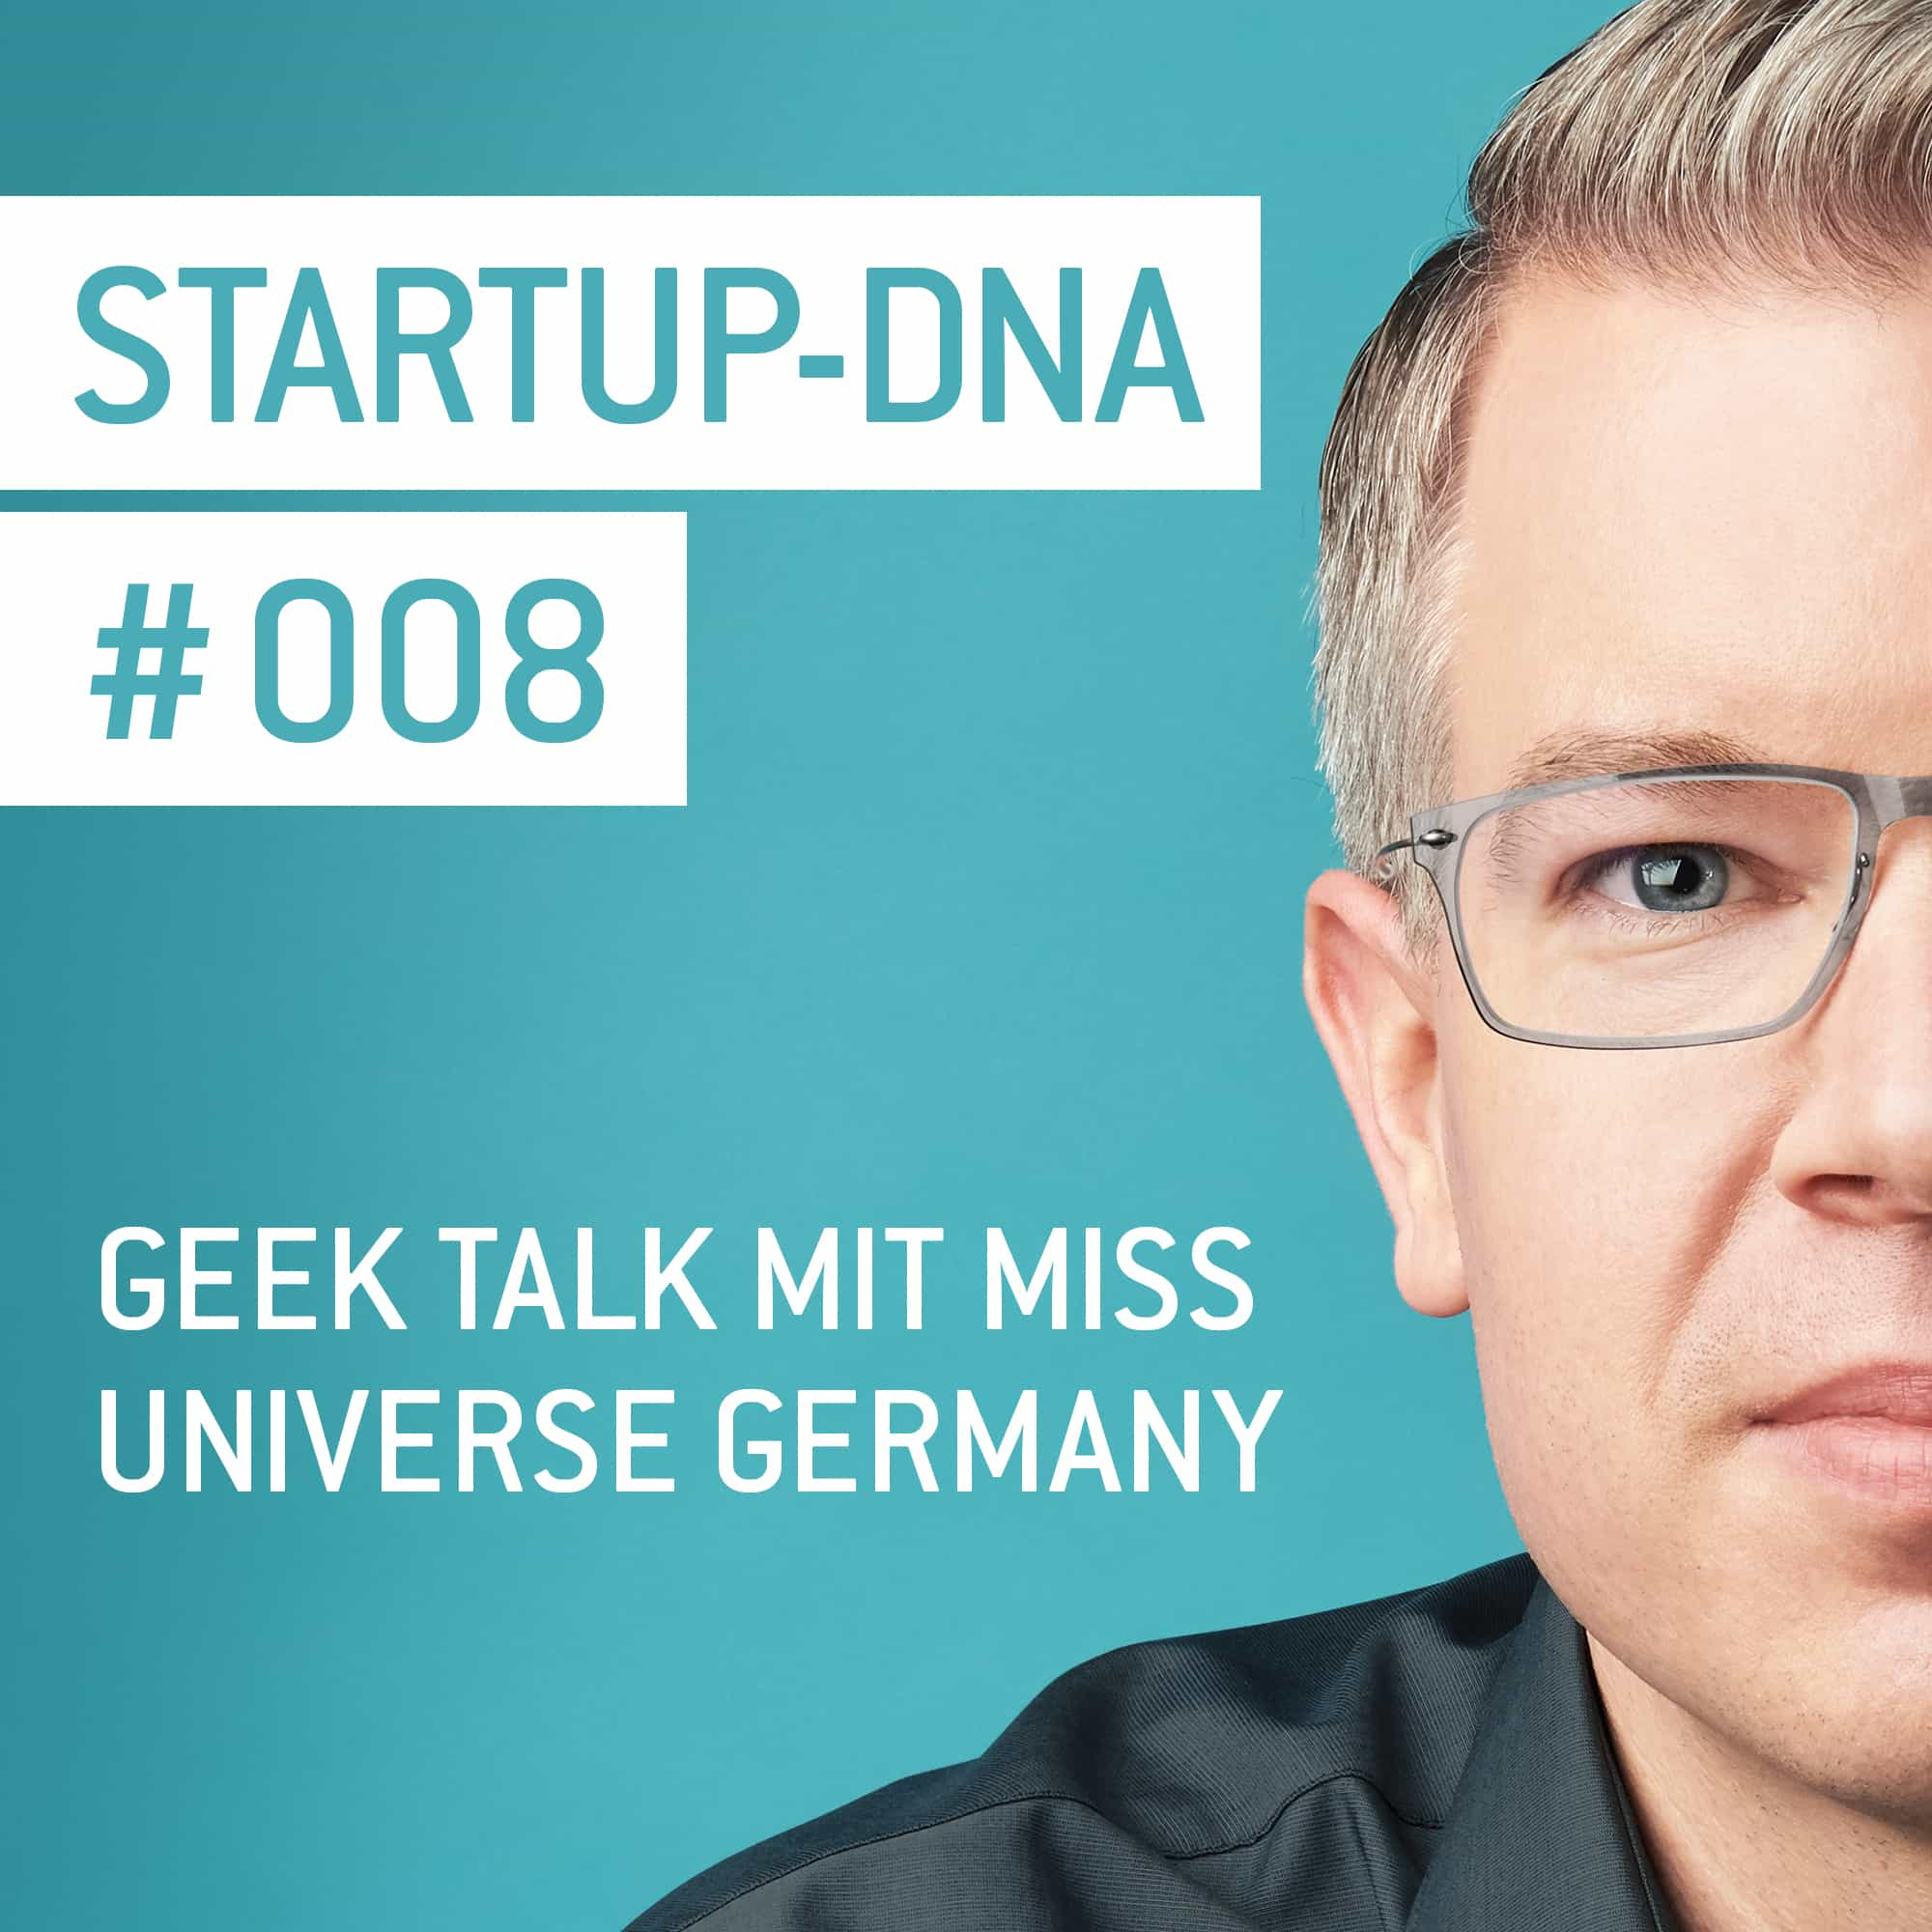 #008 Geek Talk mit Miss Universe Germany